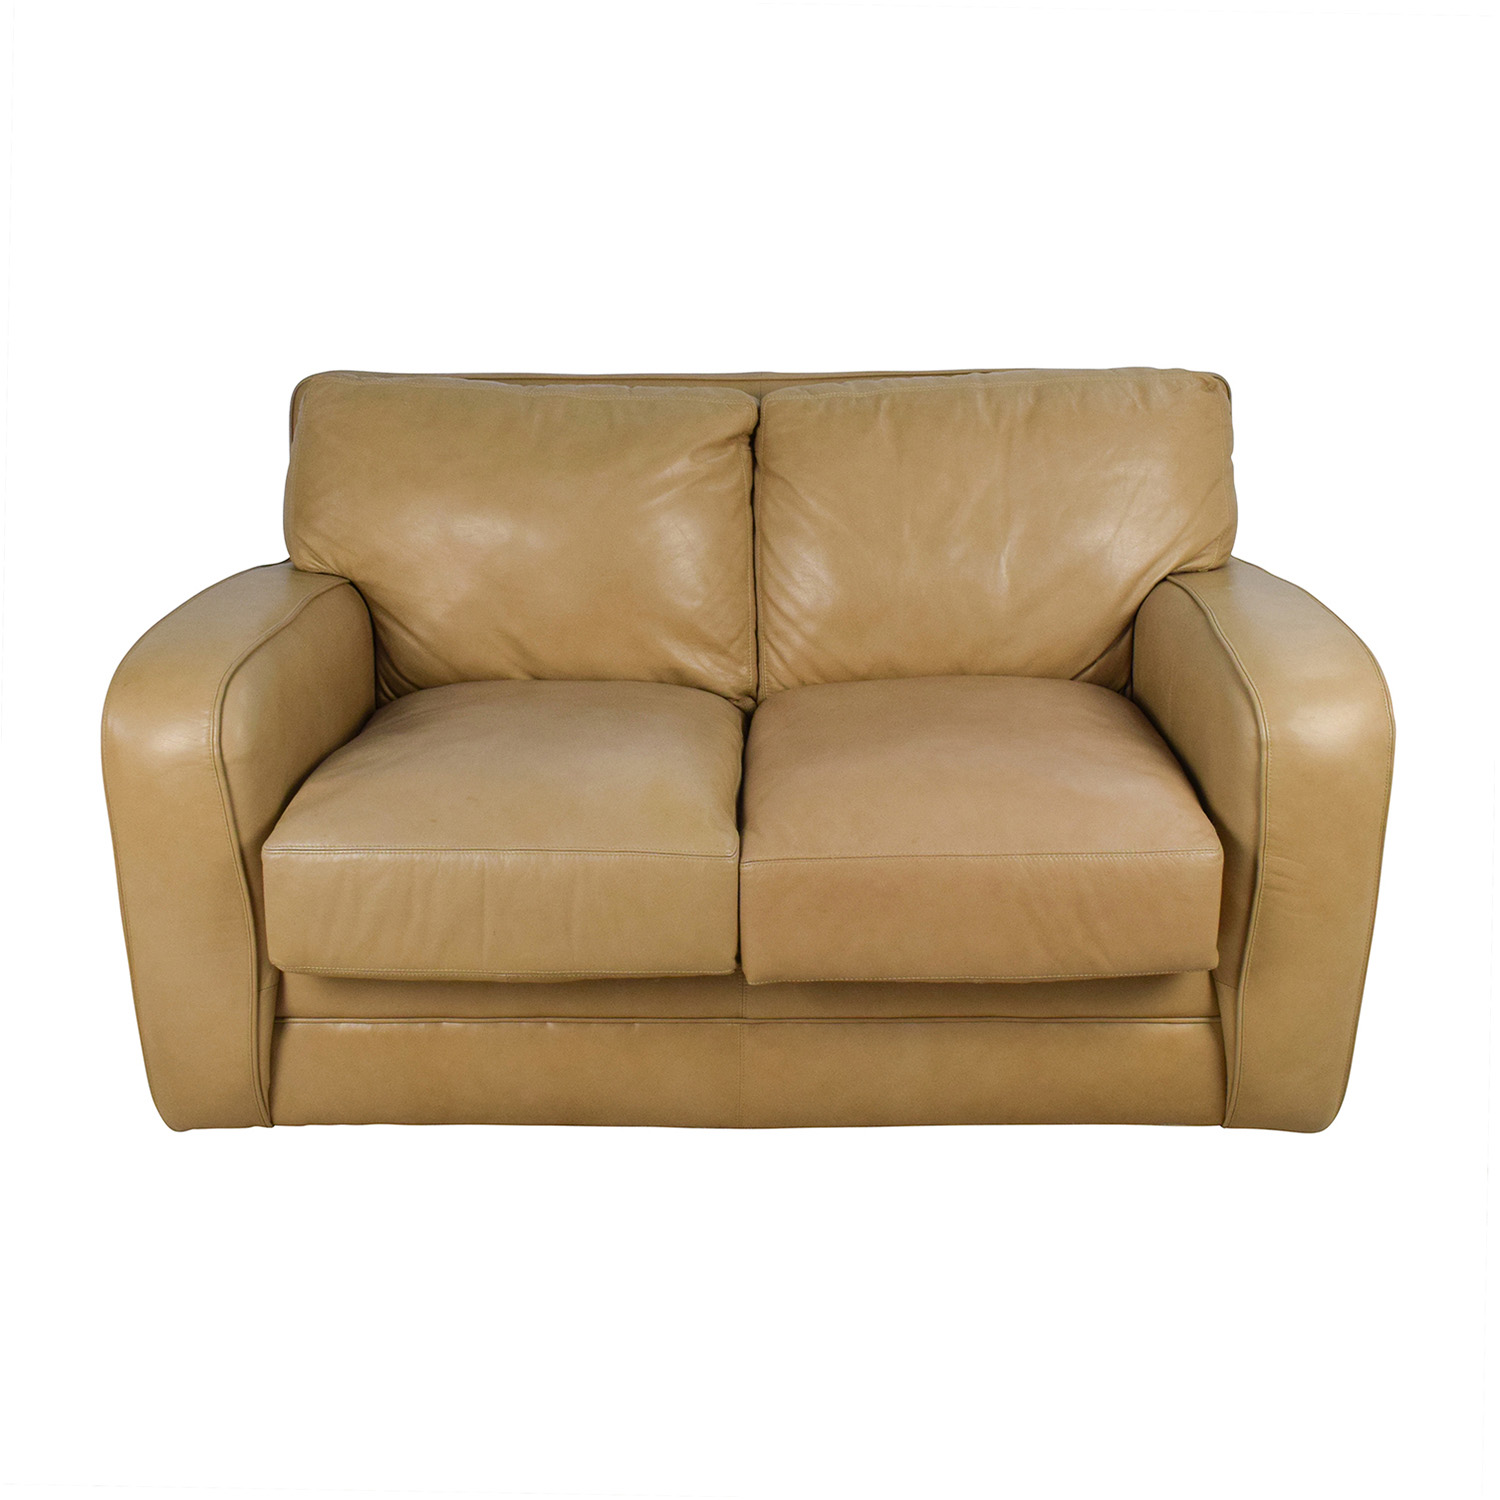 50 off beige leather loveseat sofas for Couch and loveseat